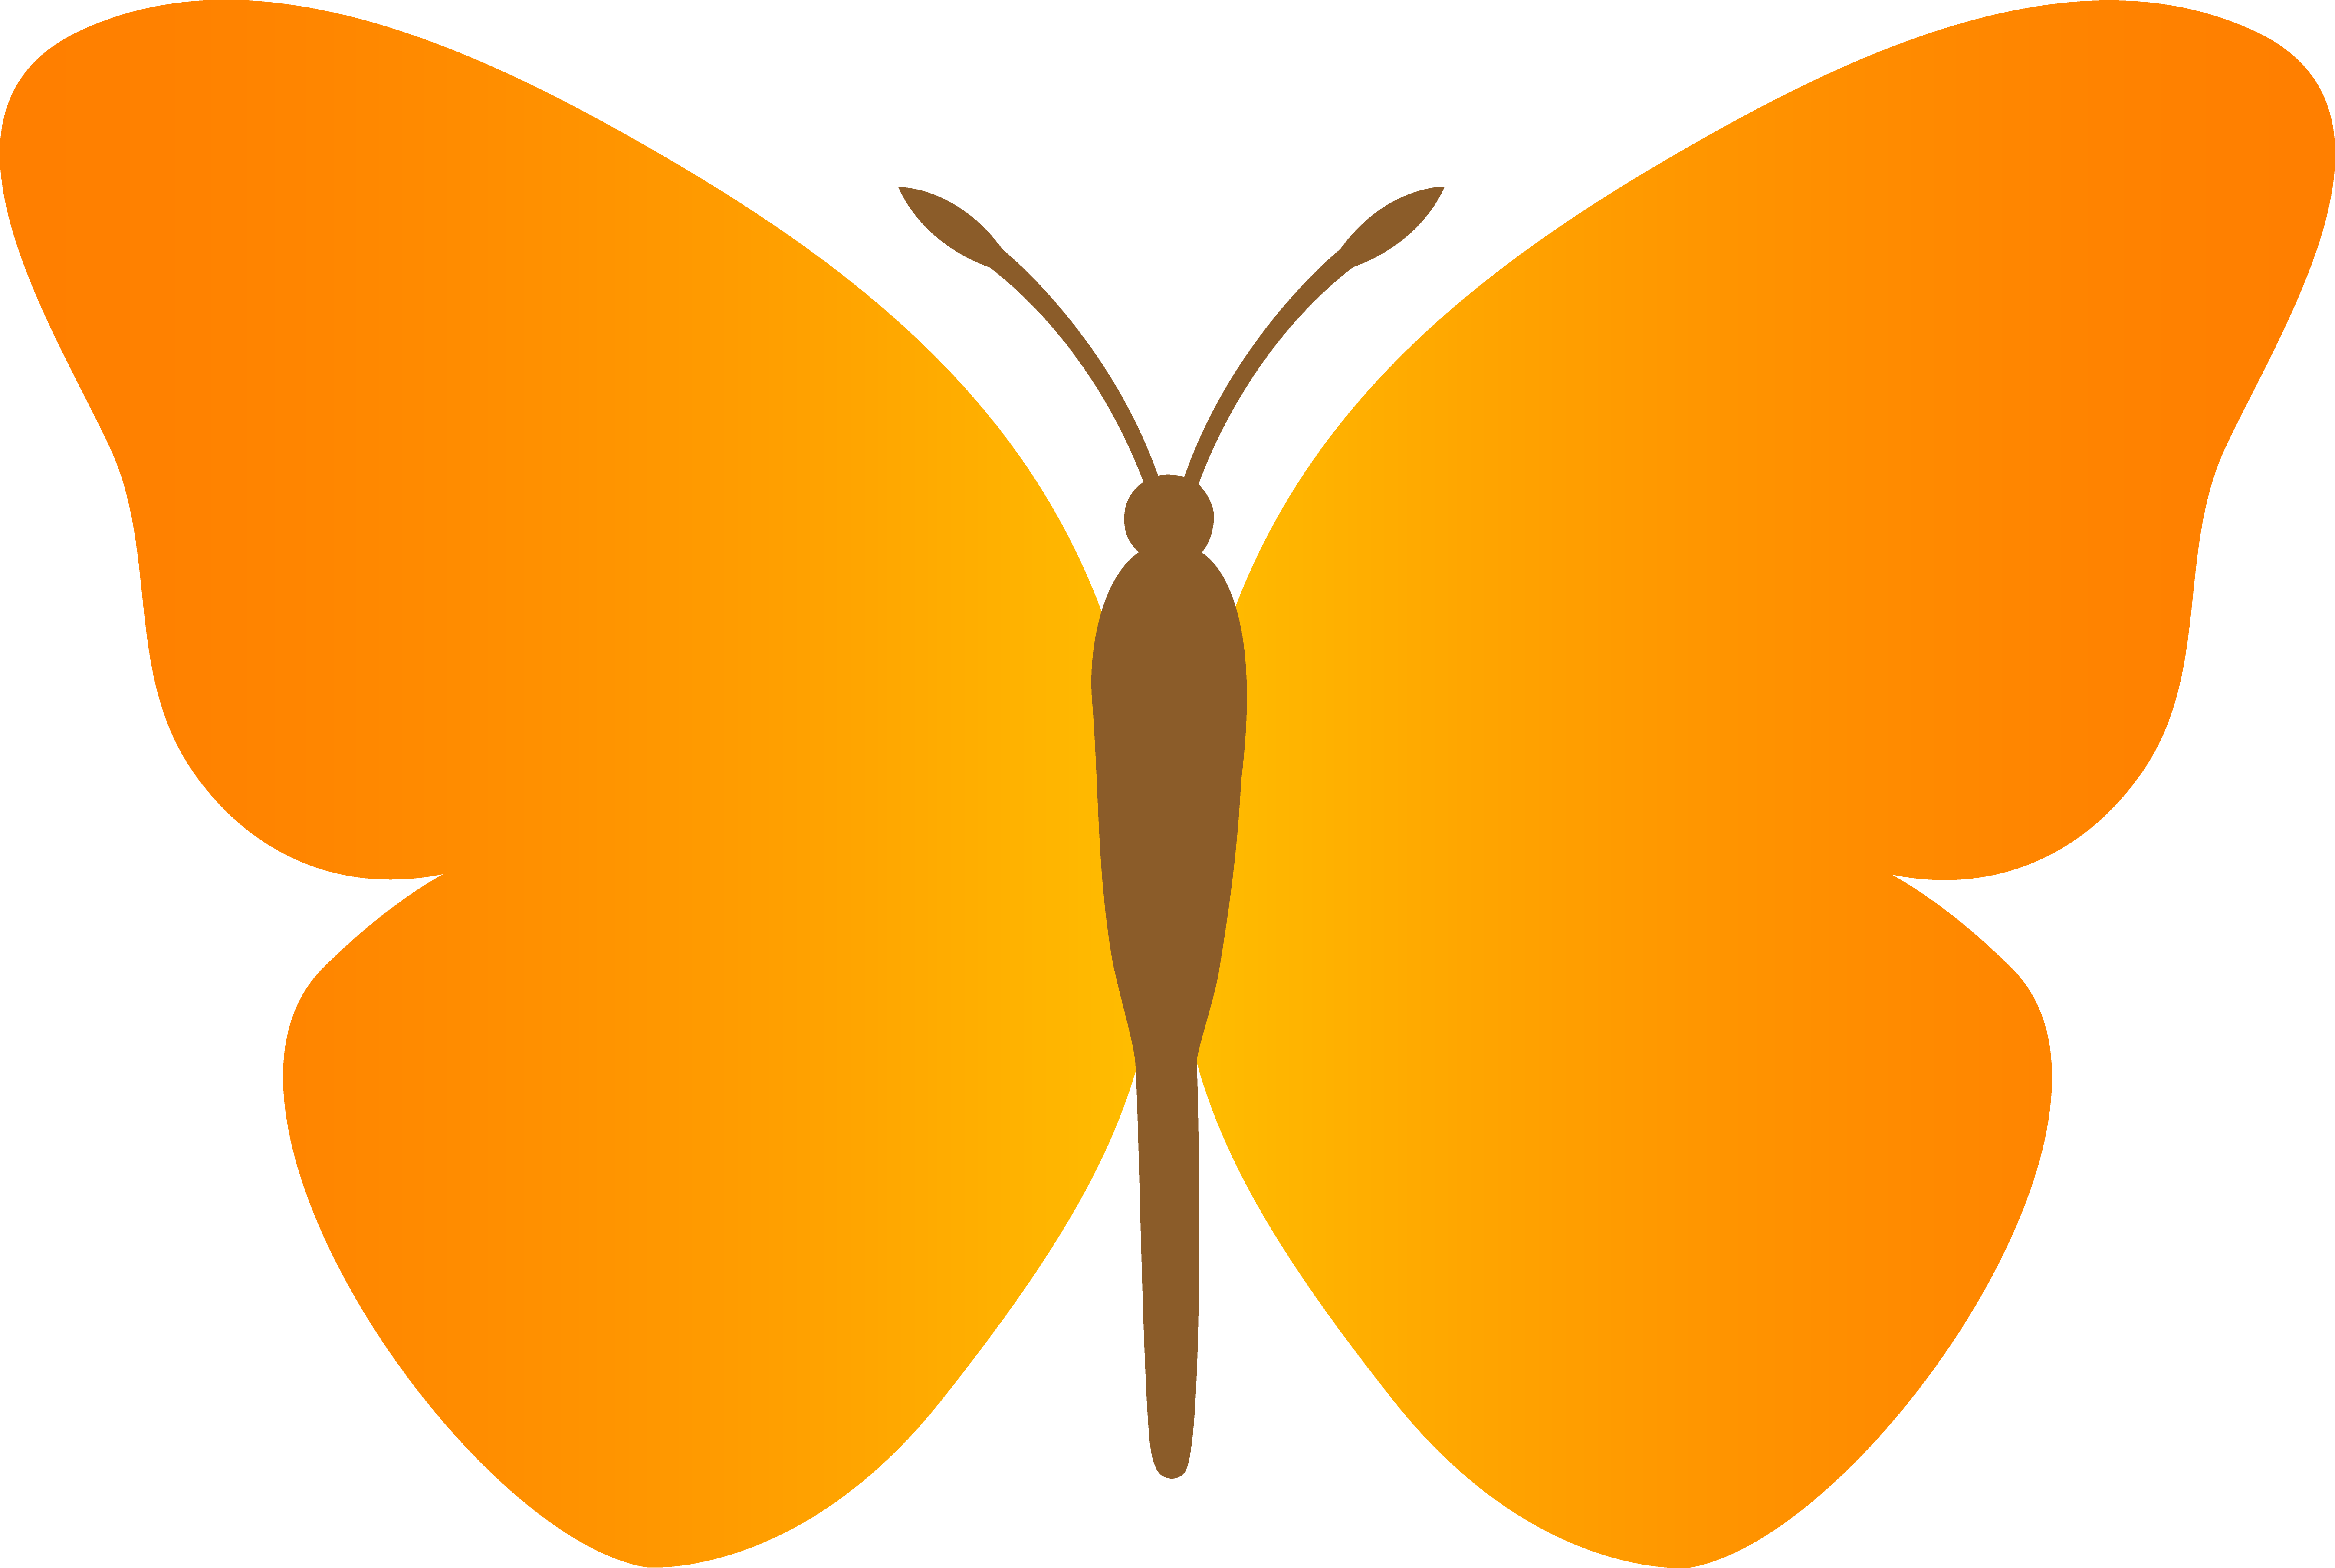 Frog clipart butterfly. Simple orange free clip